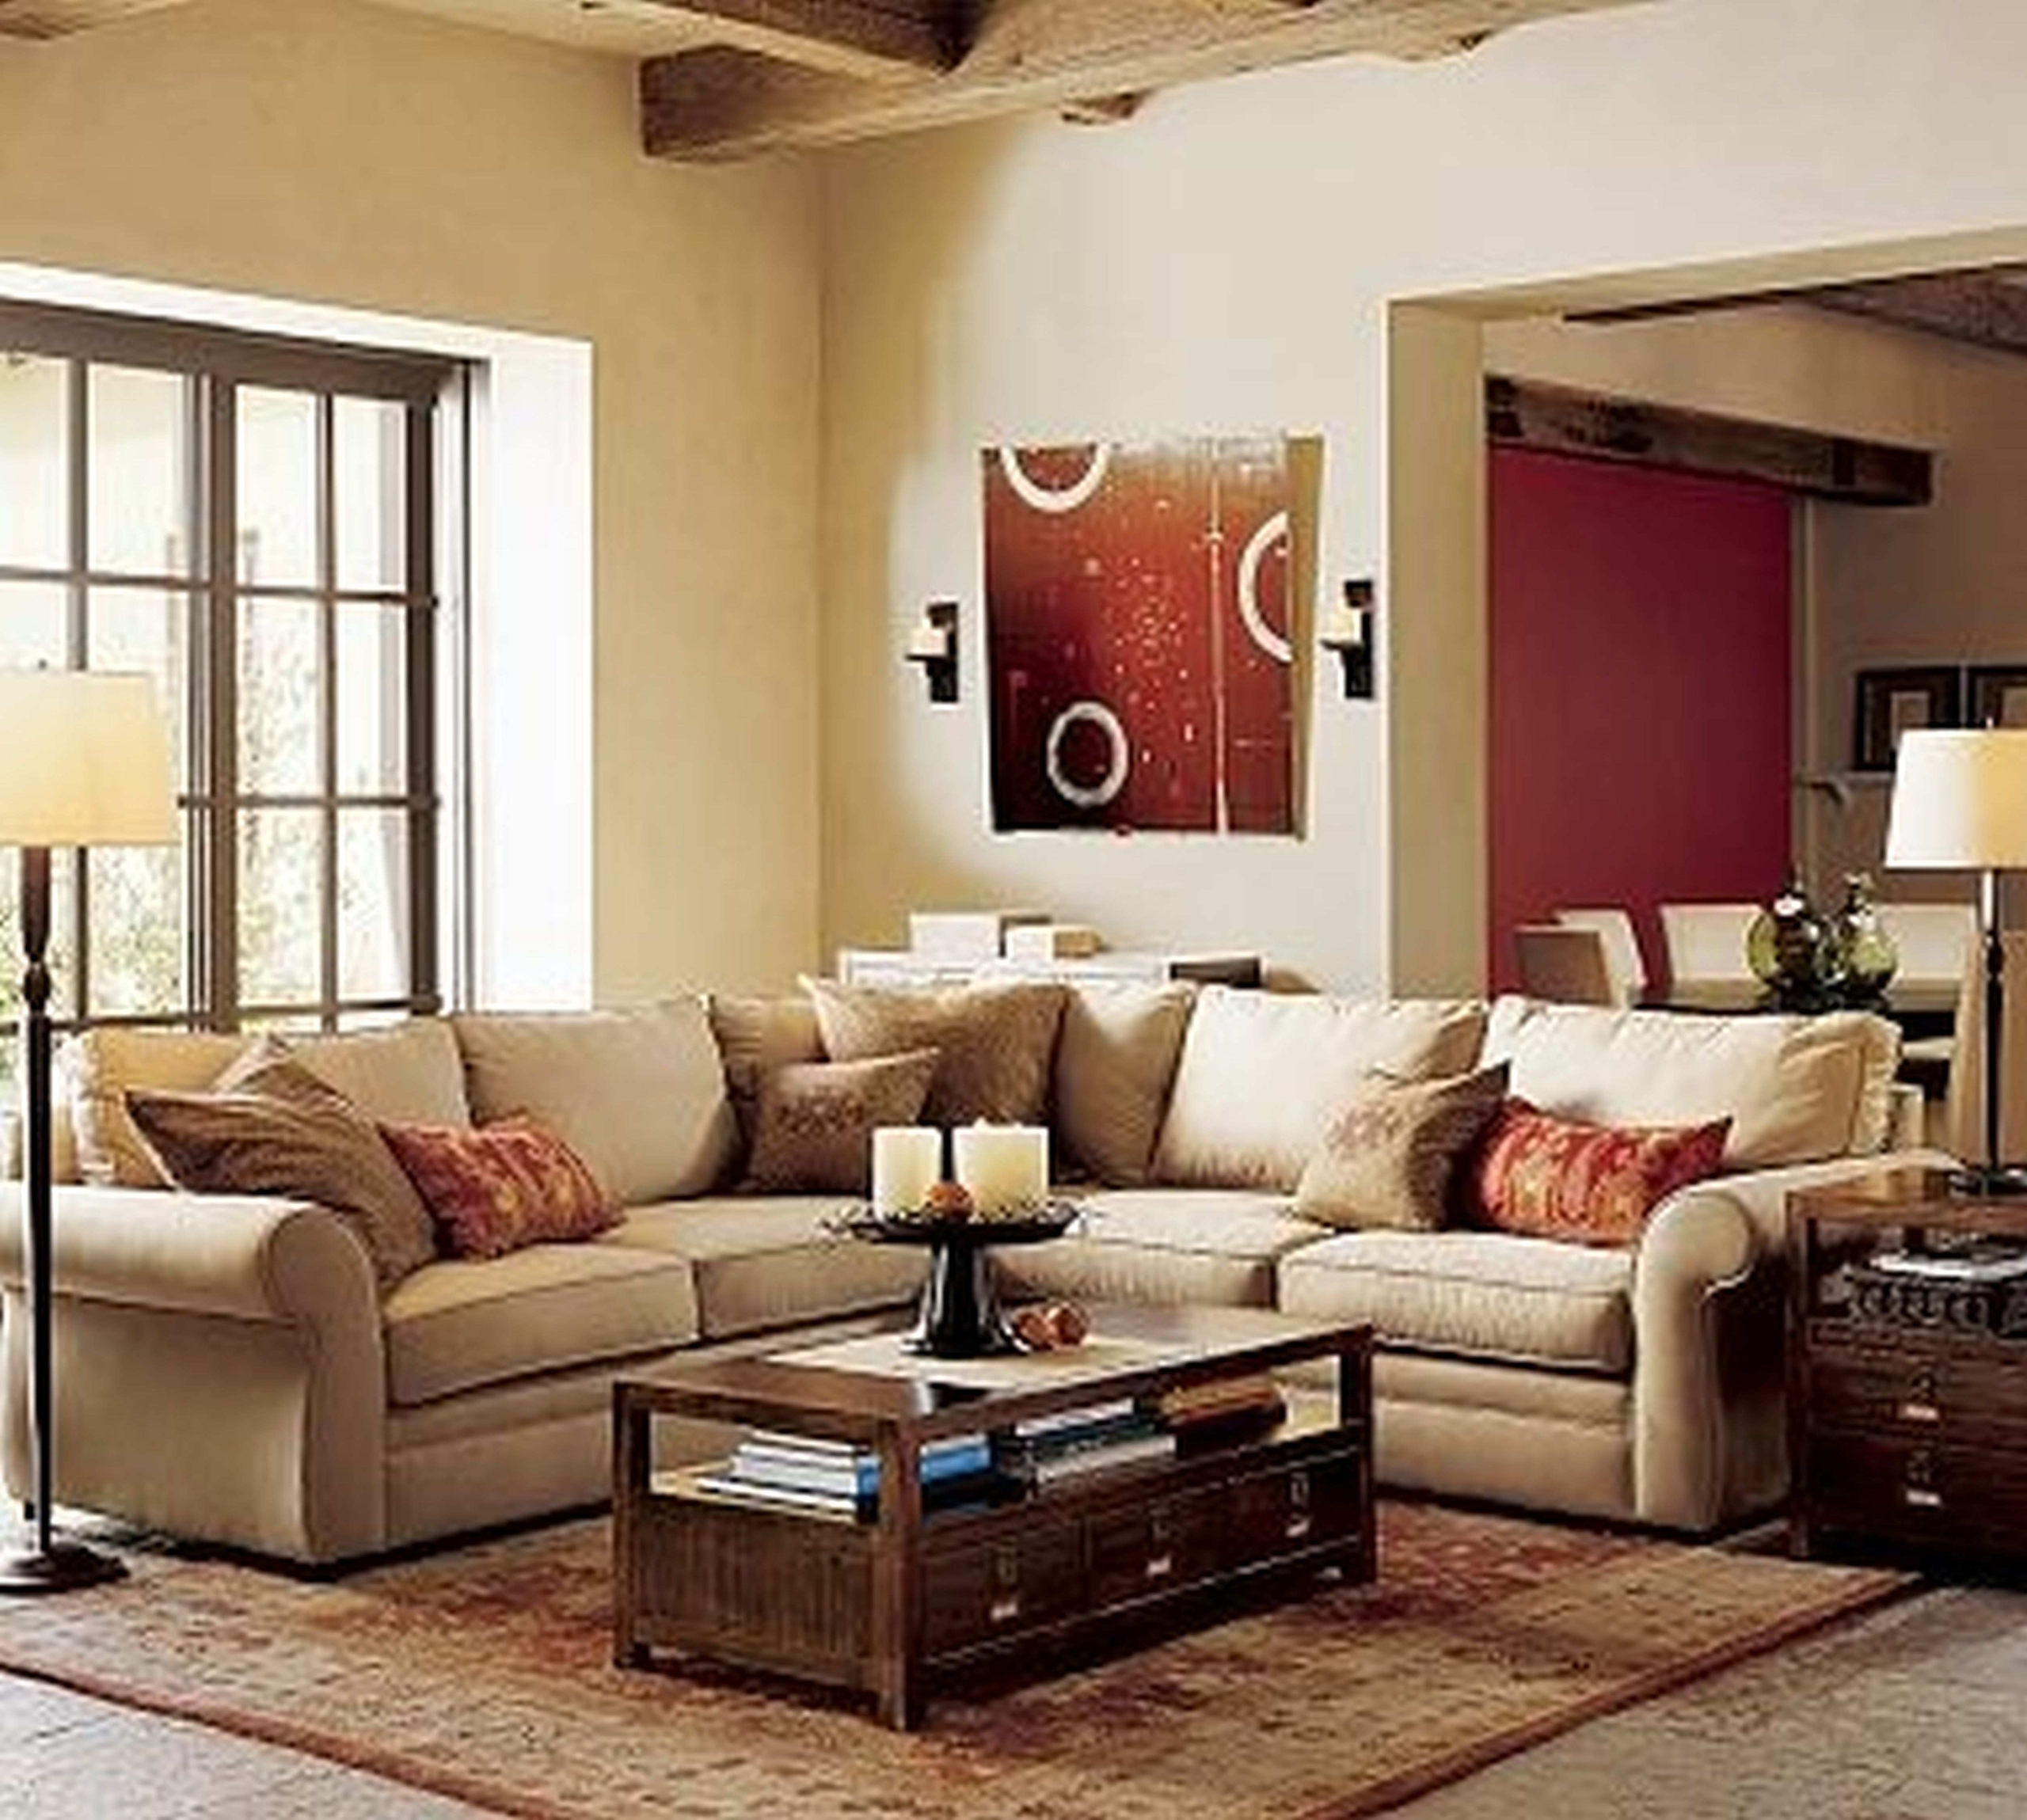 Awe Inspiring Living Room Spaces Pictures And Ideas For Your